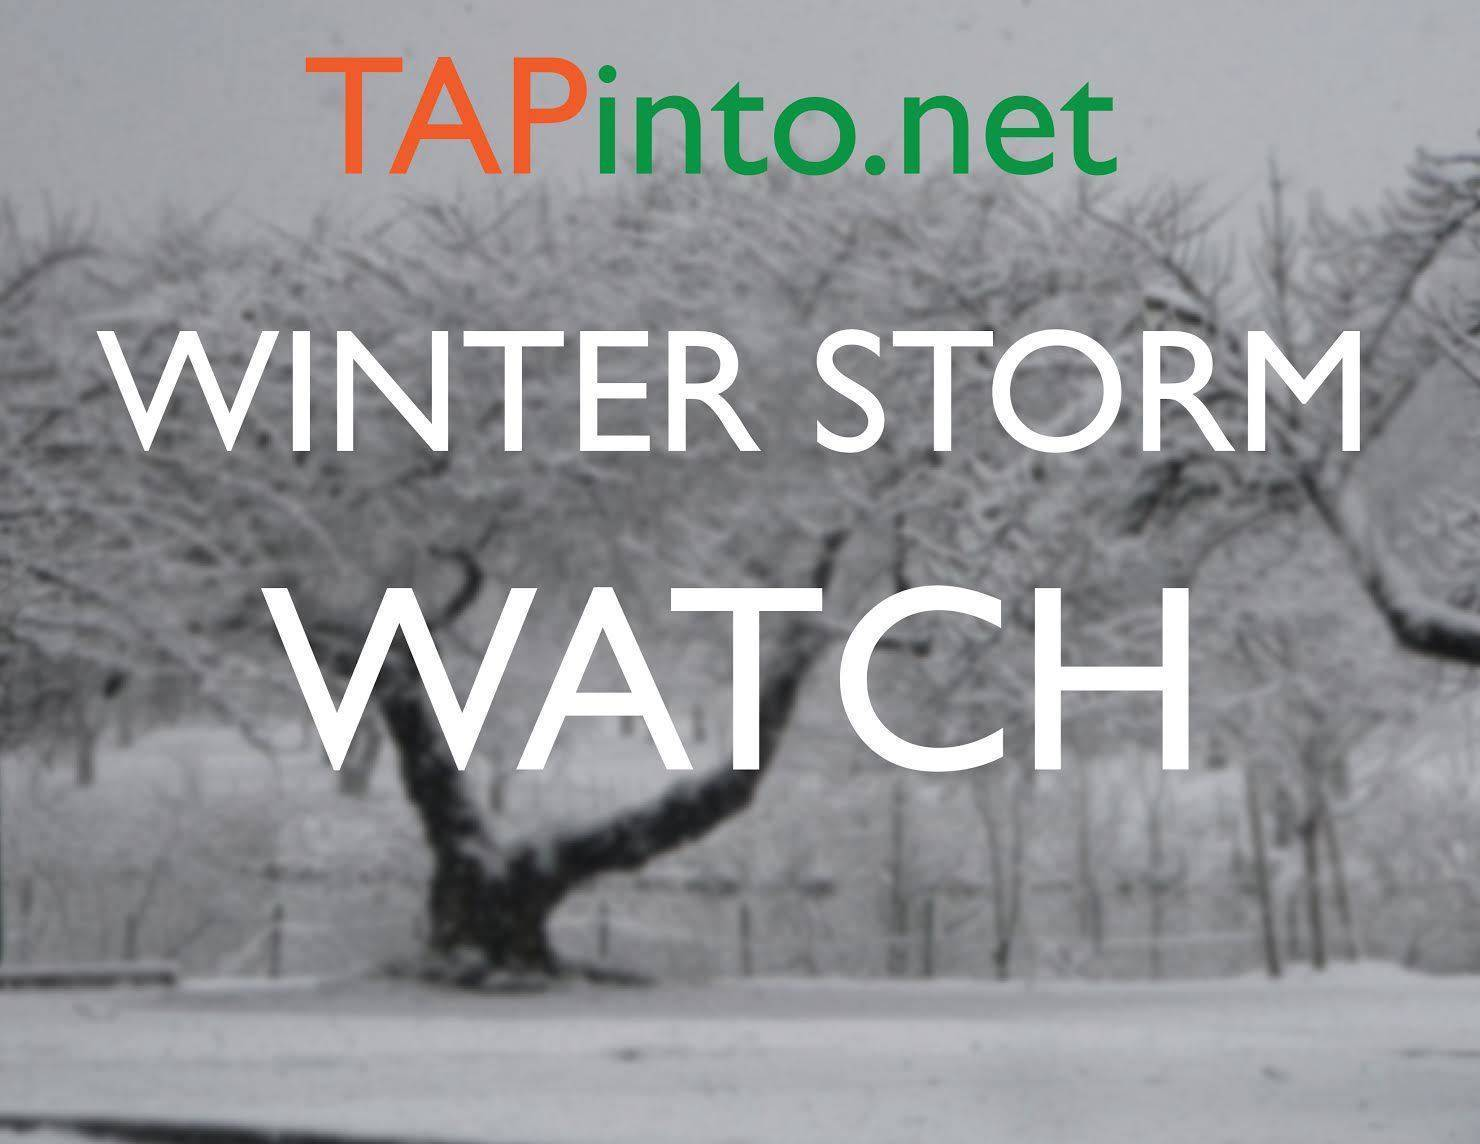 Mayor Andre Sayegh Provides Winter Storm Update